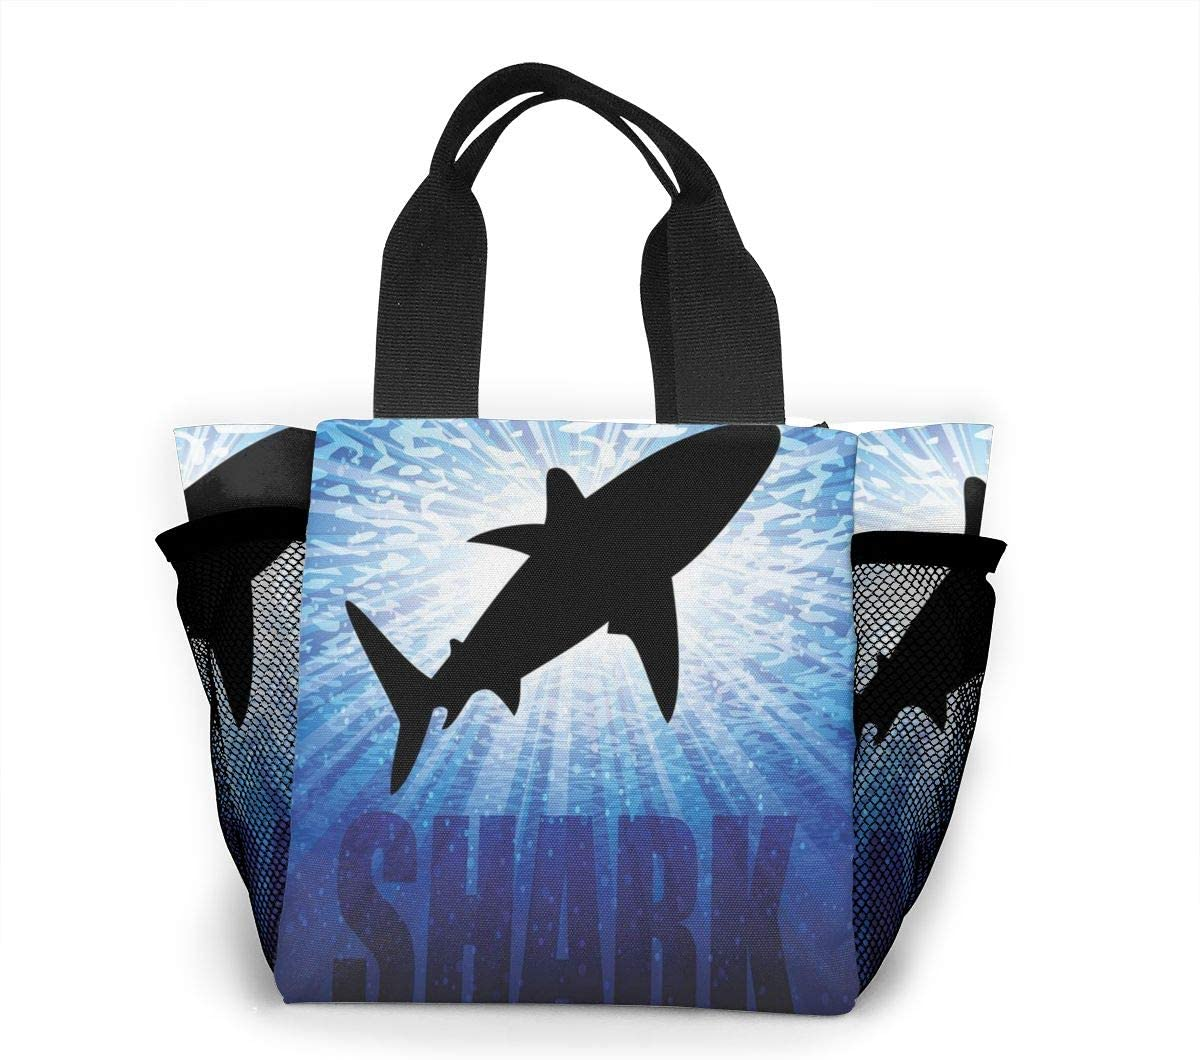 Qbahoe Shopping Bags Camo Camouflage Shark Underwater Hunter Lunch Bag Gourmet Lunchbox Insulated Portable Carry Tote Handbag For Travel Shopping School Work Picnic